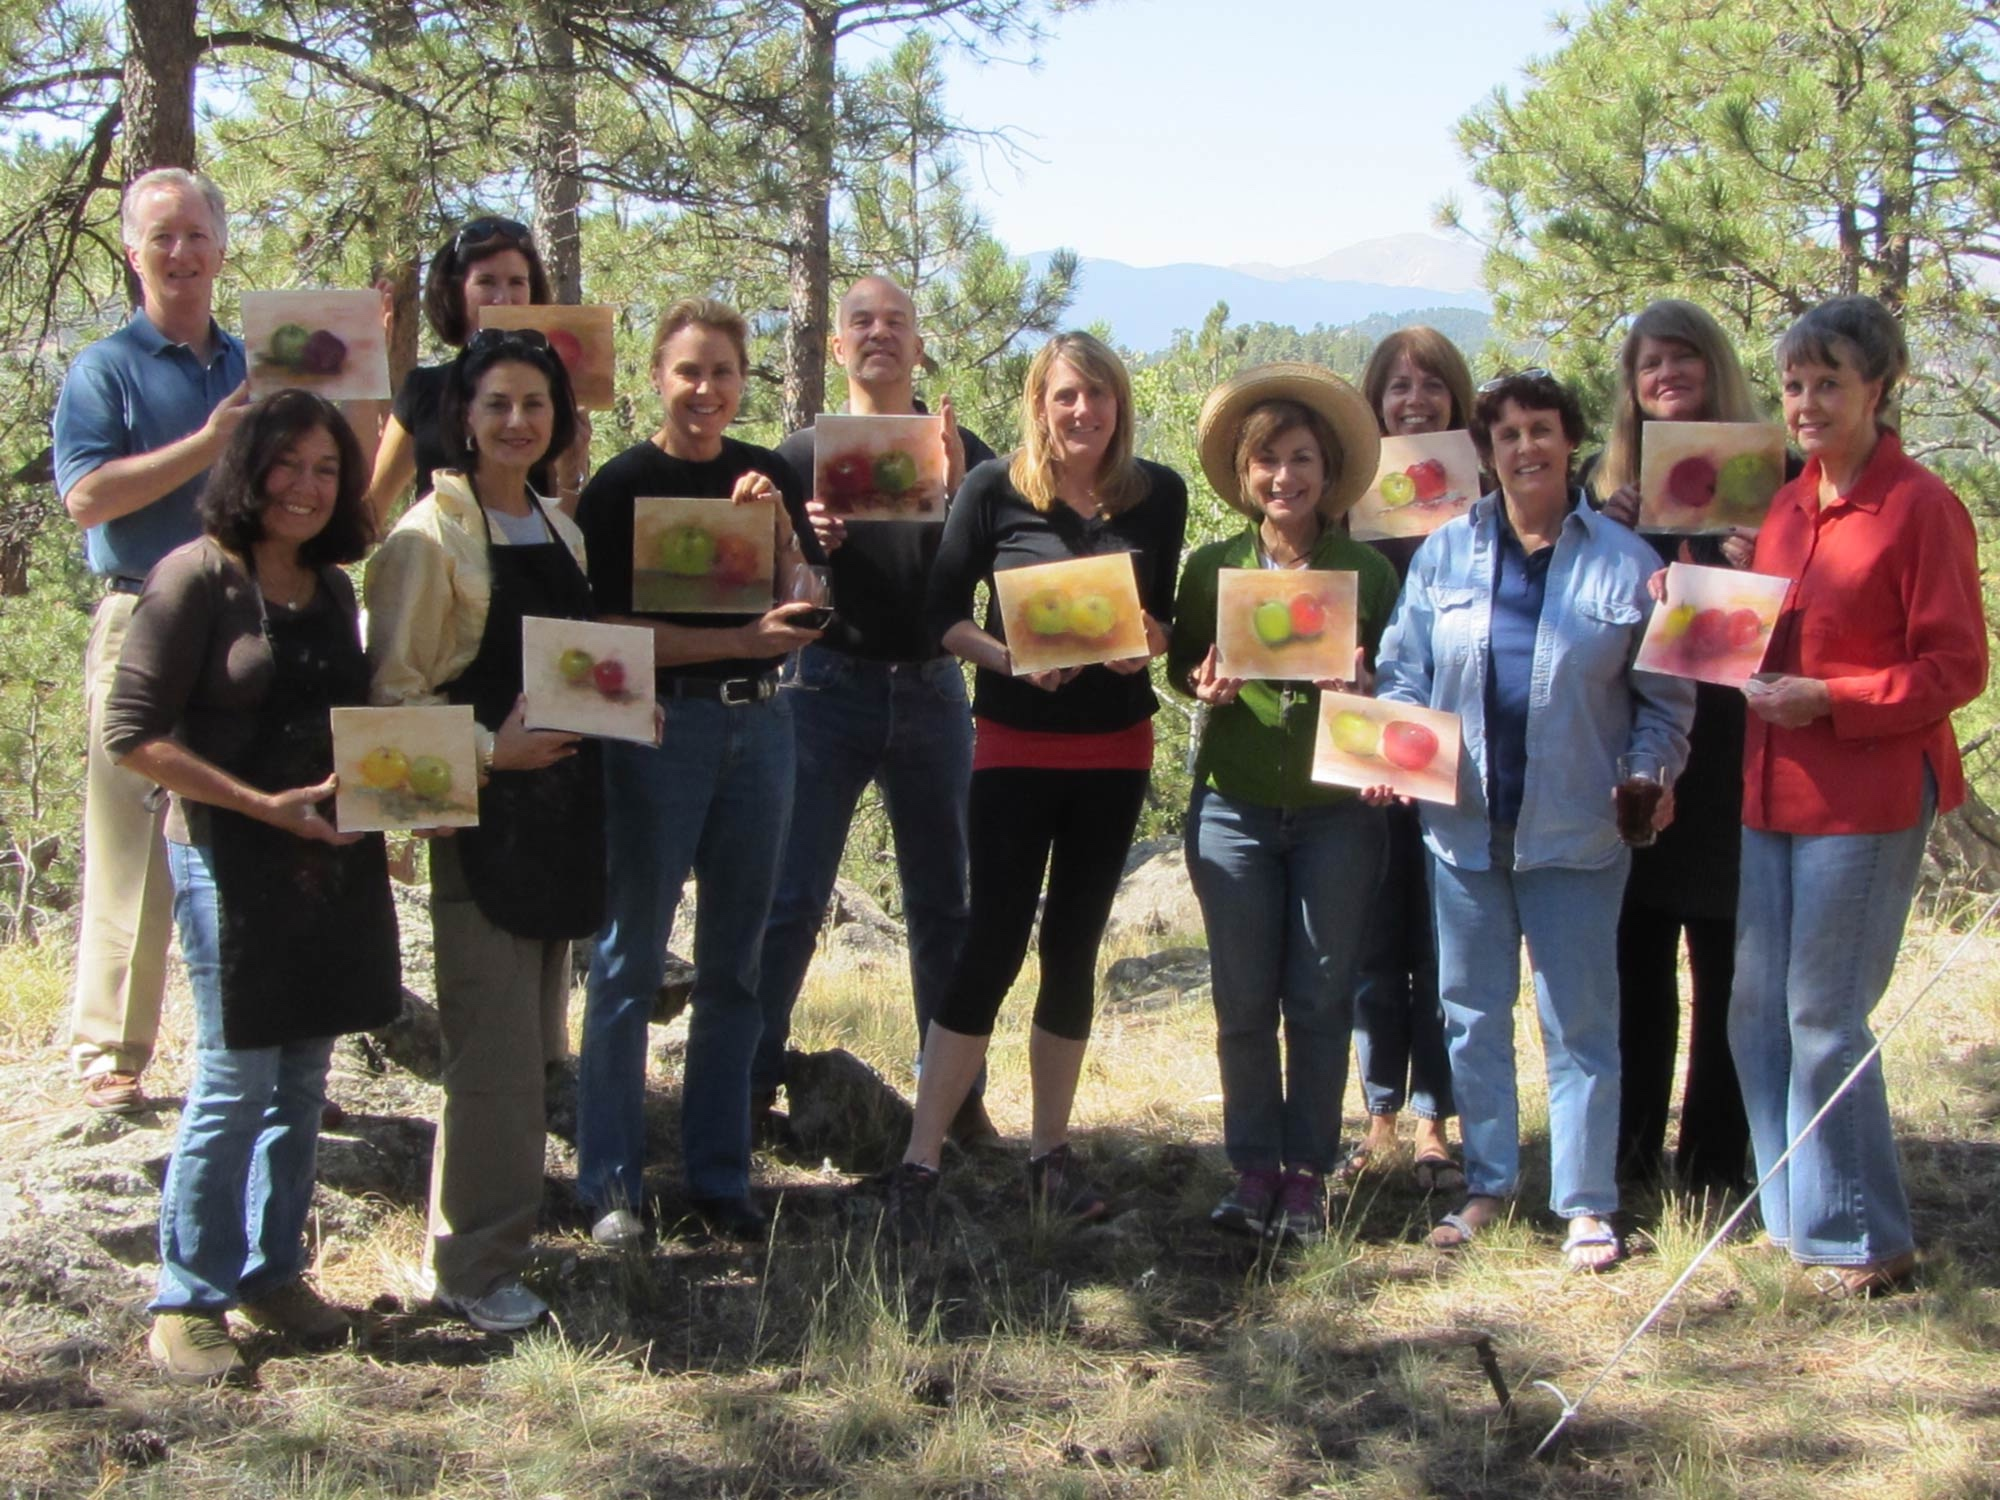 #68_Paint-Out-2012_Collectors-with-their-art-works-created-at-pastel-lesson-with-Kathy-Anderson-and-Stephanie-Birdsall